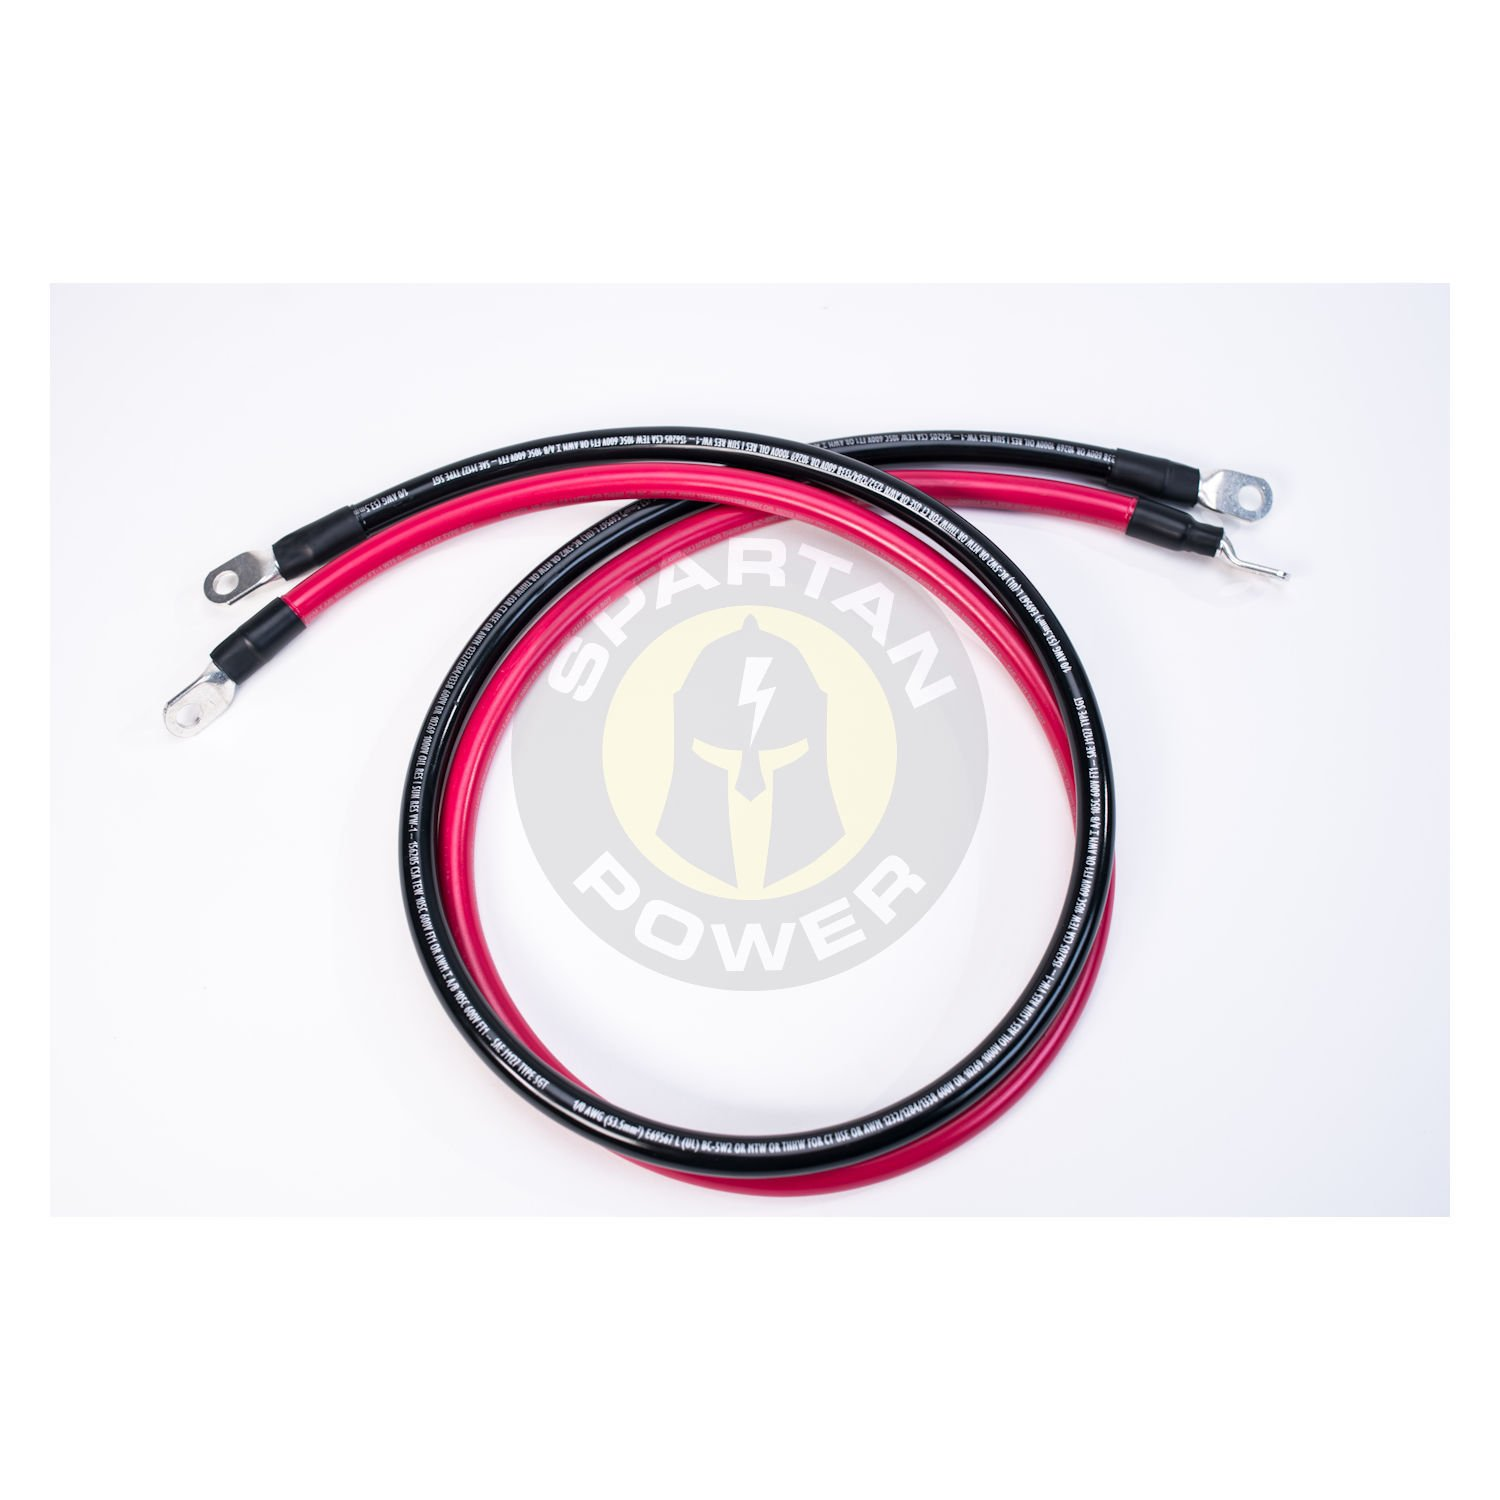 Spartan Power 4 AWG 5 Foot Battery Cable Set Four Gauge Wire Made in America 5 FT with 3//8 Ring Terminals